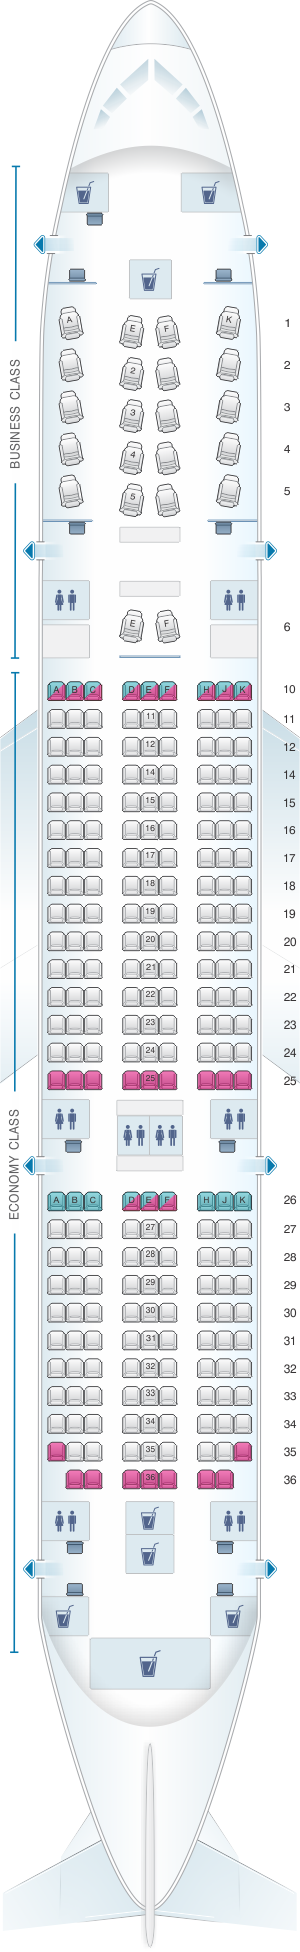 Seat map for Qatar Airways Boeing B787 Dreamliner 254pax